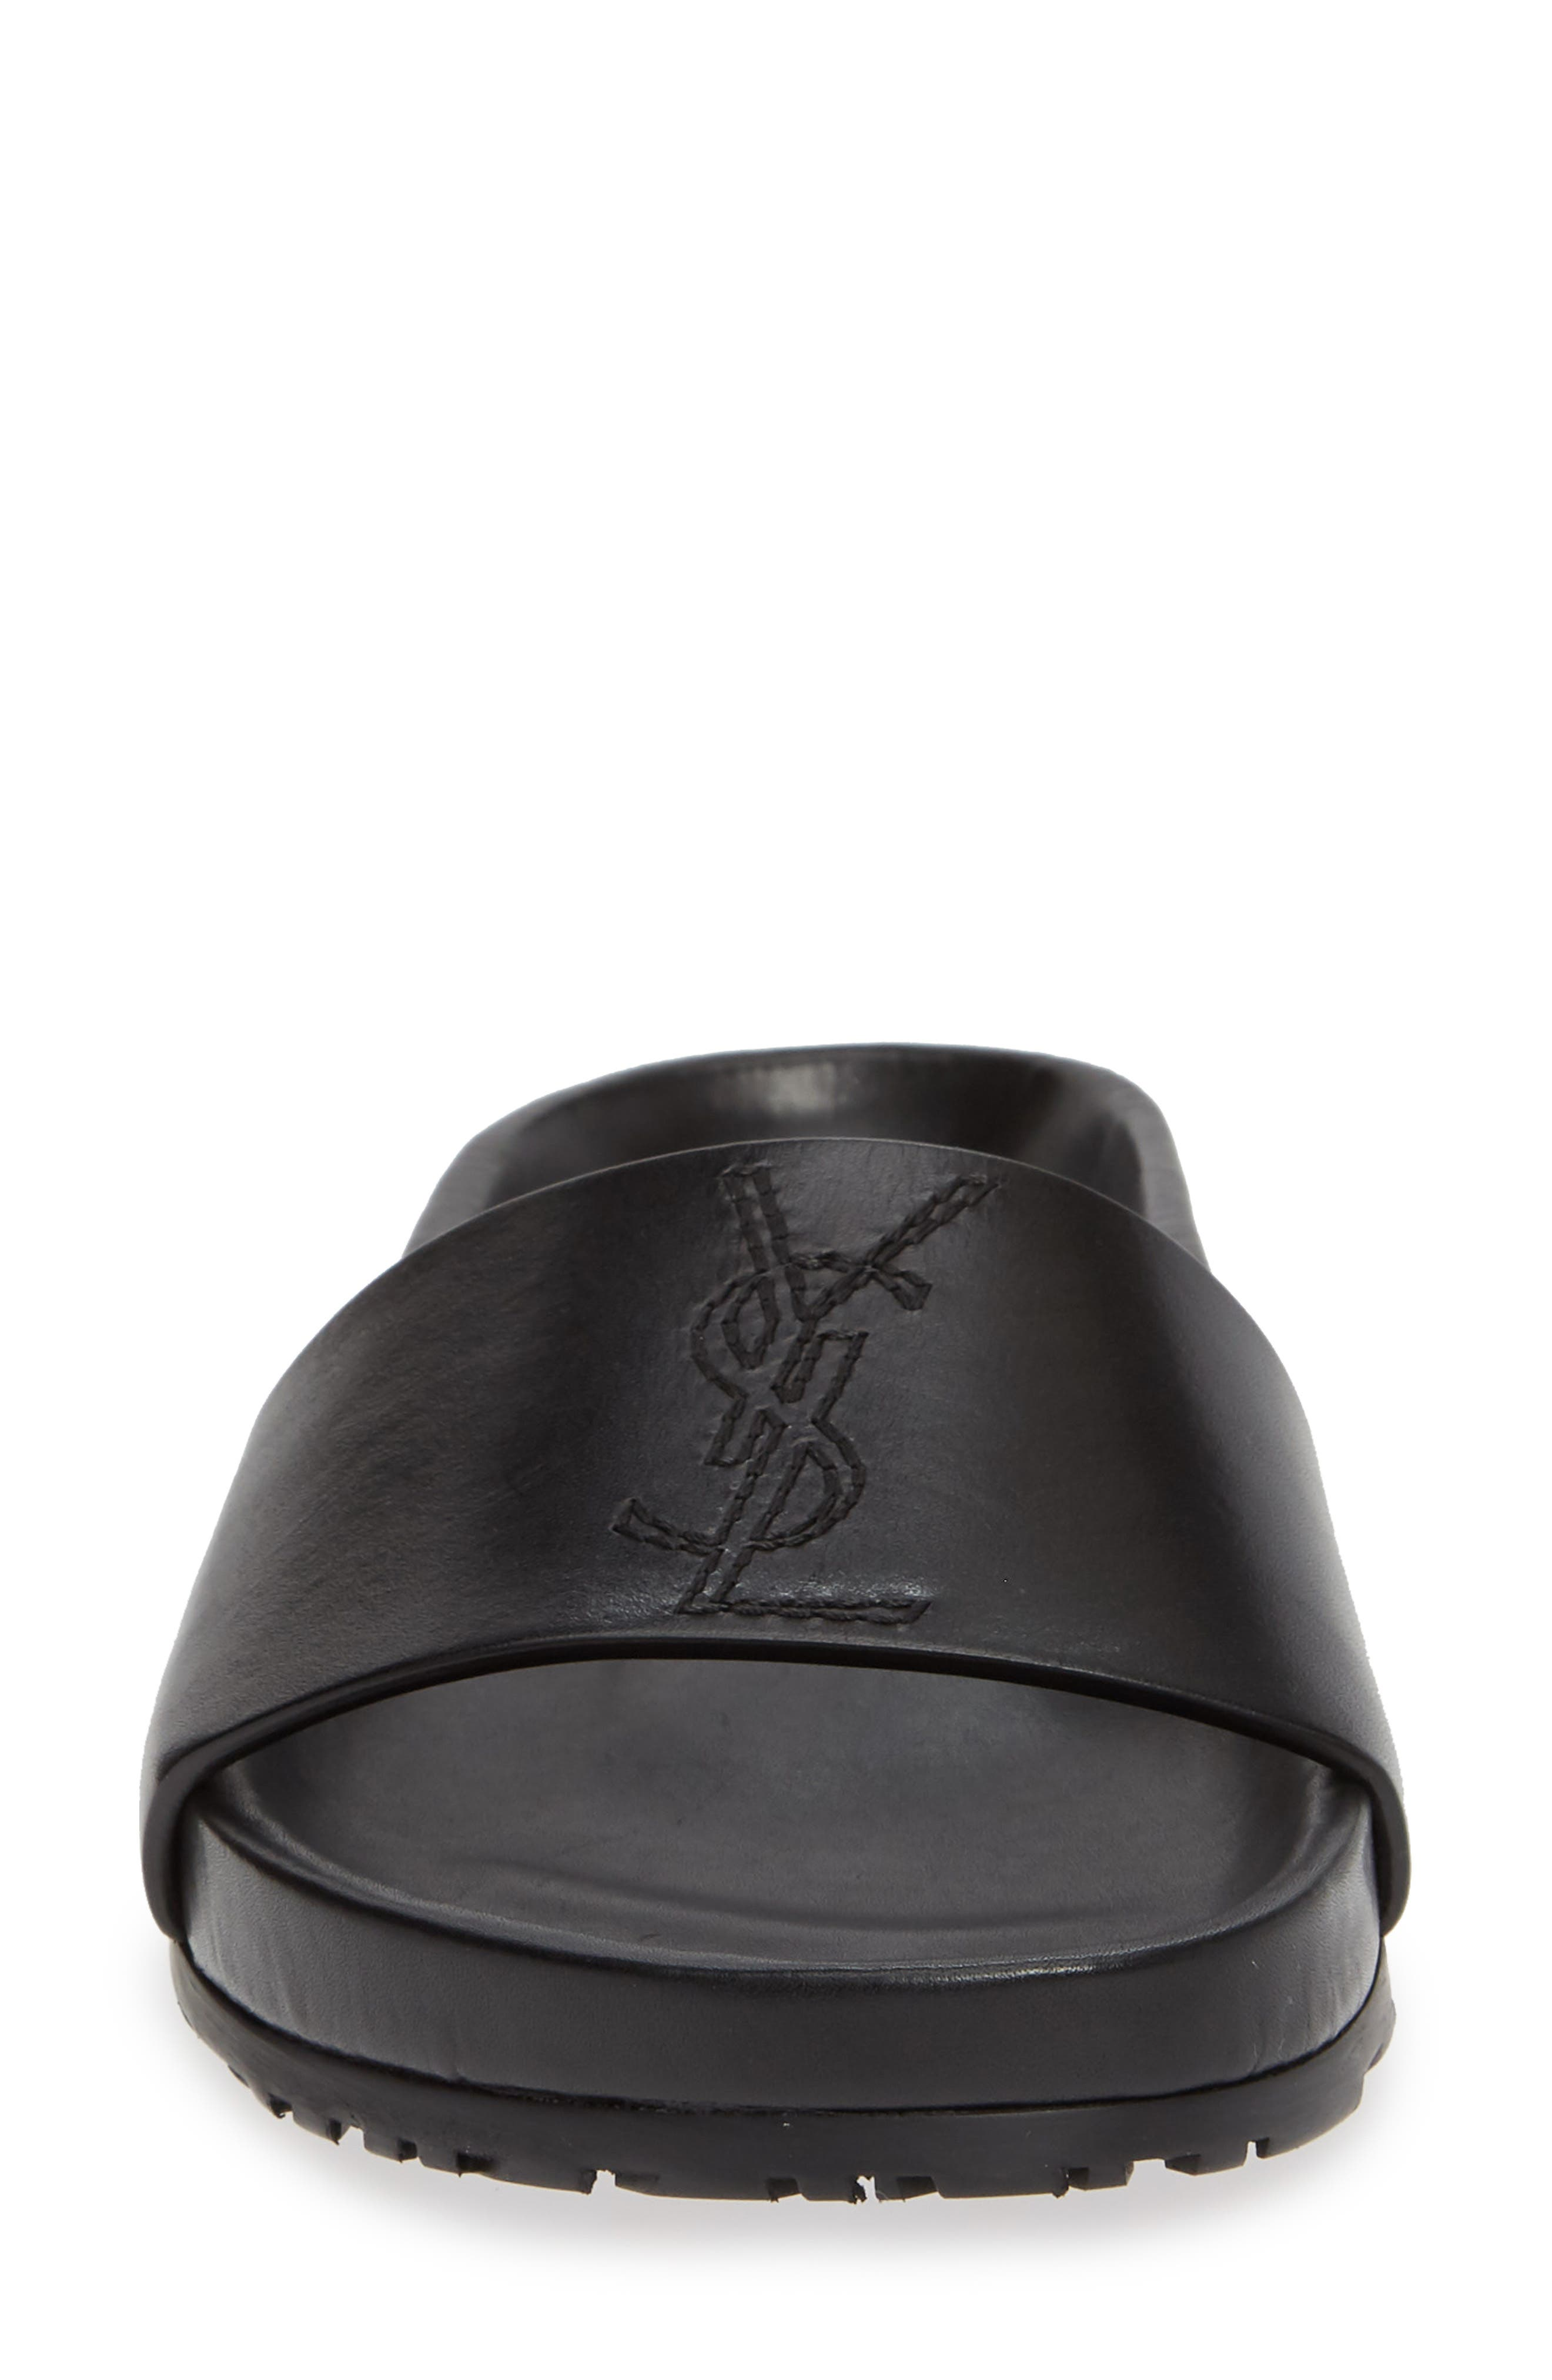 SAINT LAURENT, Jimmy Logo Slide Sandal, Alternate thumbnail 4, color, BLACK LEATHER